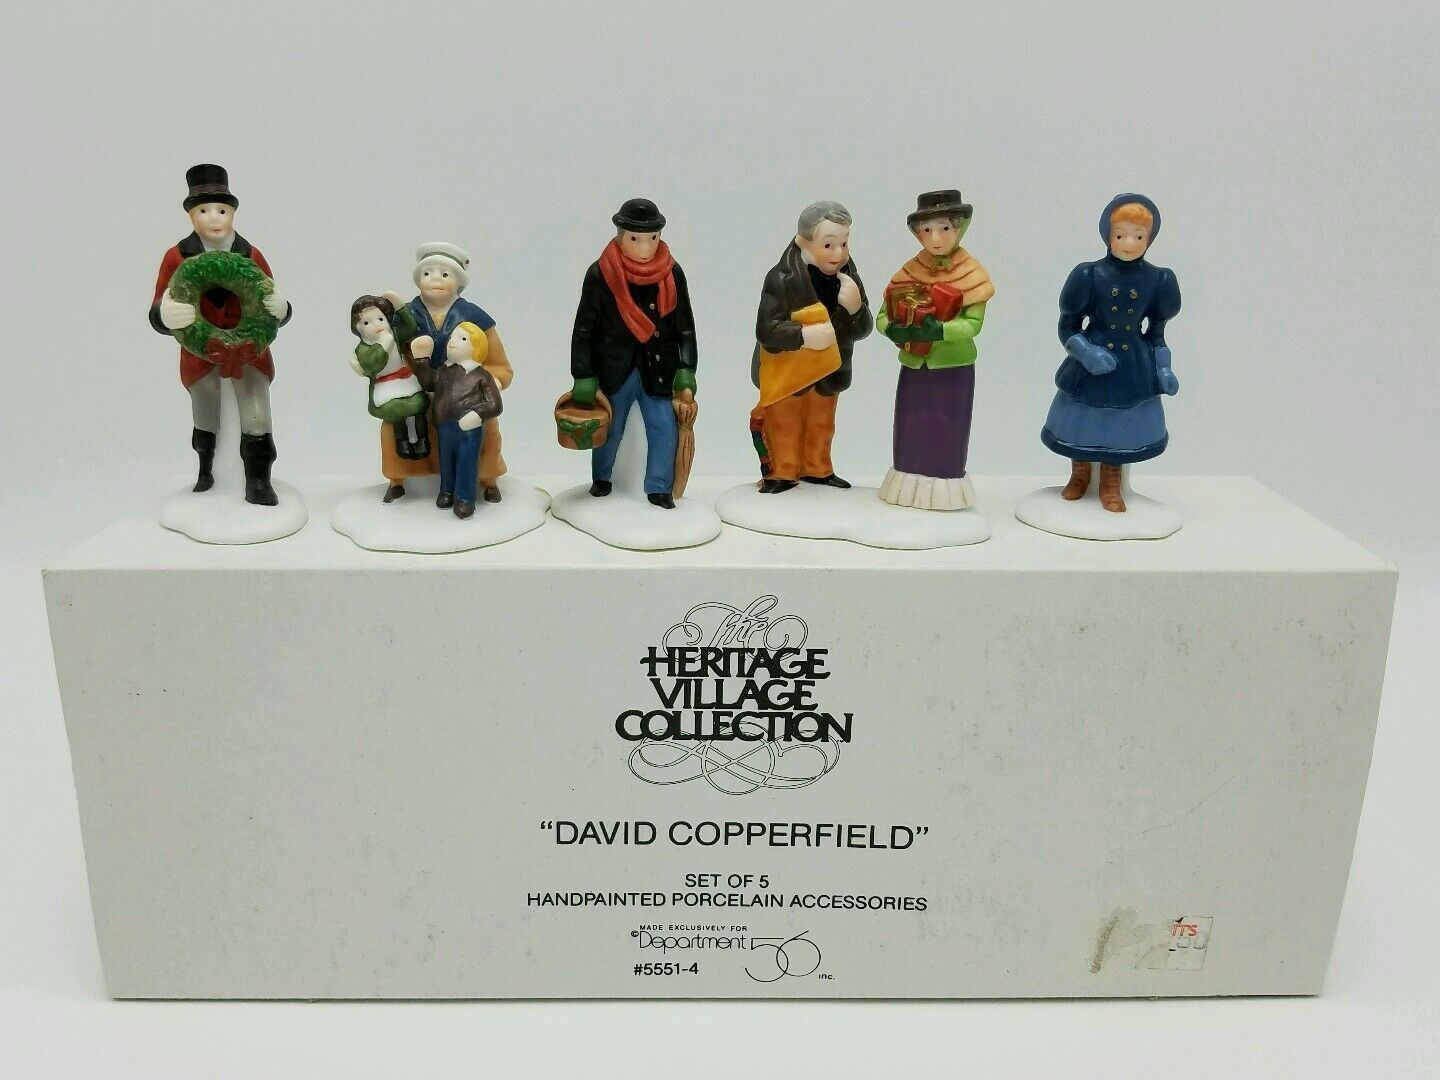 department 56 dickens david copperfield characters 5 pc set new in department 56 dickens david copperfield characters 5 pc set new in box retired 3 3 of 3 see more